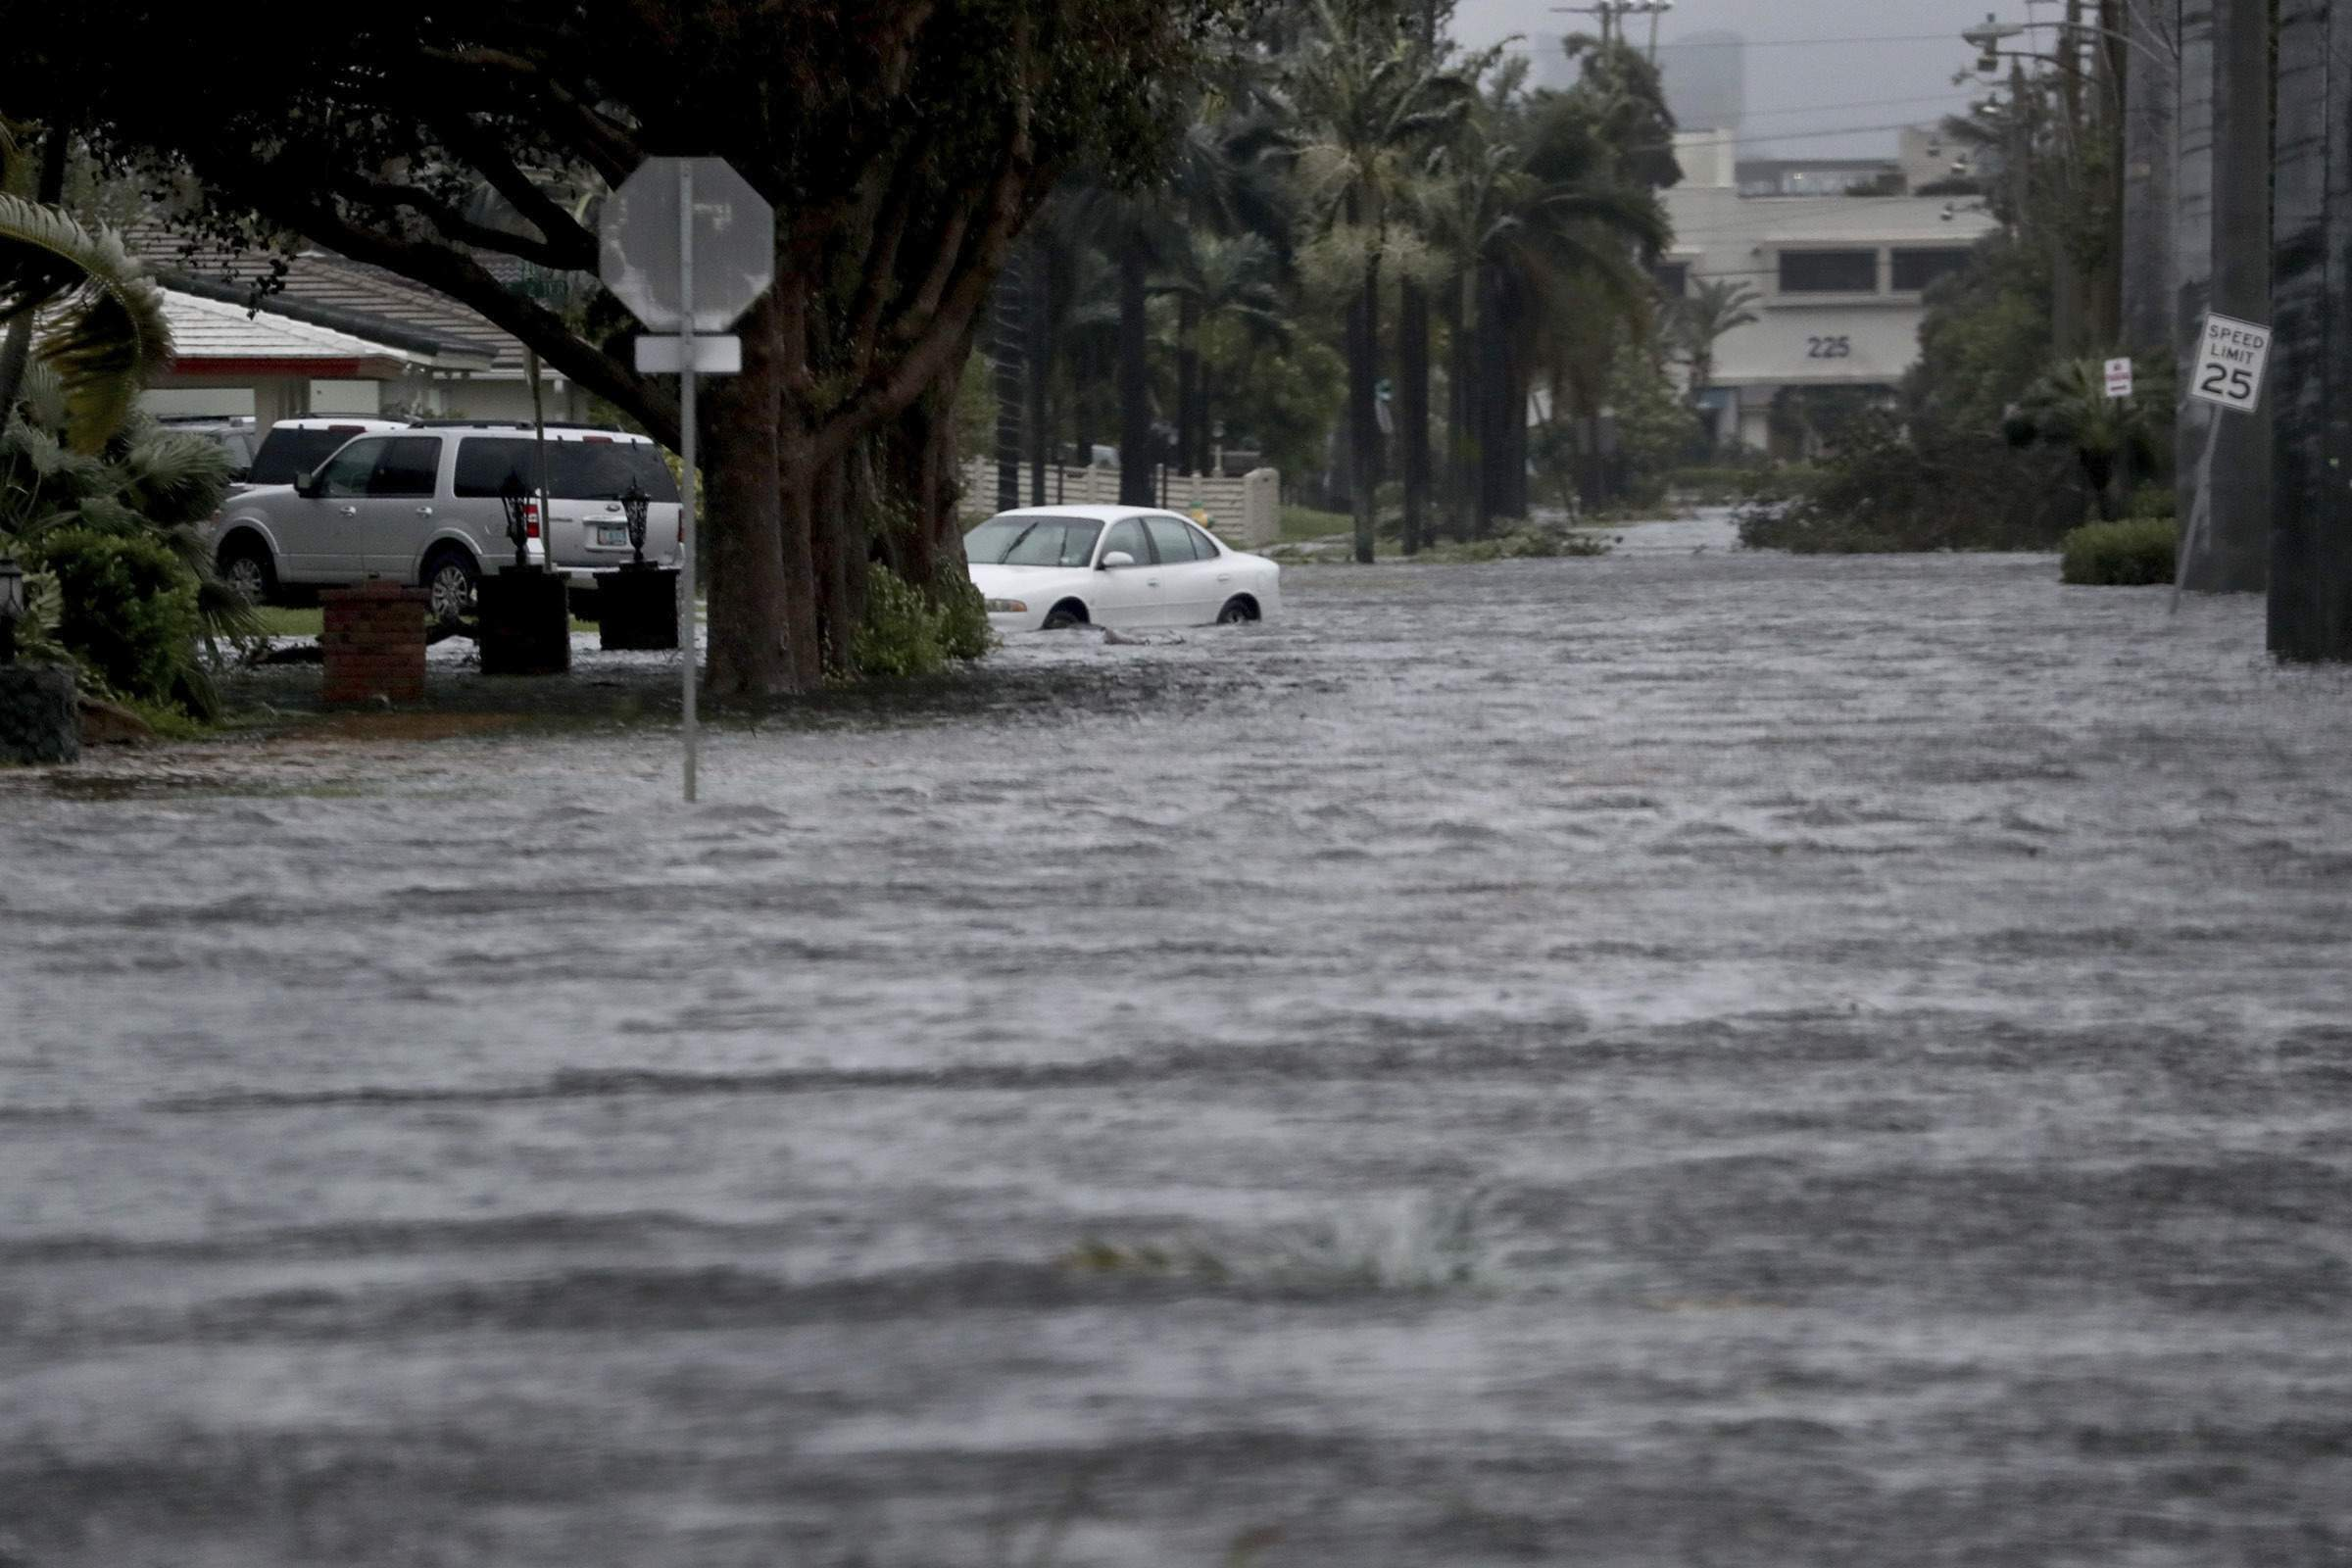 Floodwaters cover part of 3rd Ave in Dania Beach, east of U.S. Route 1, Fla., Sunday, Sept. 10, 2017, as Hurricane Irma passes. (Susan Stocker/South Florida Sun-Sentinel via AP)